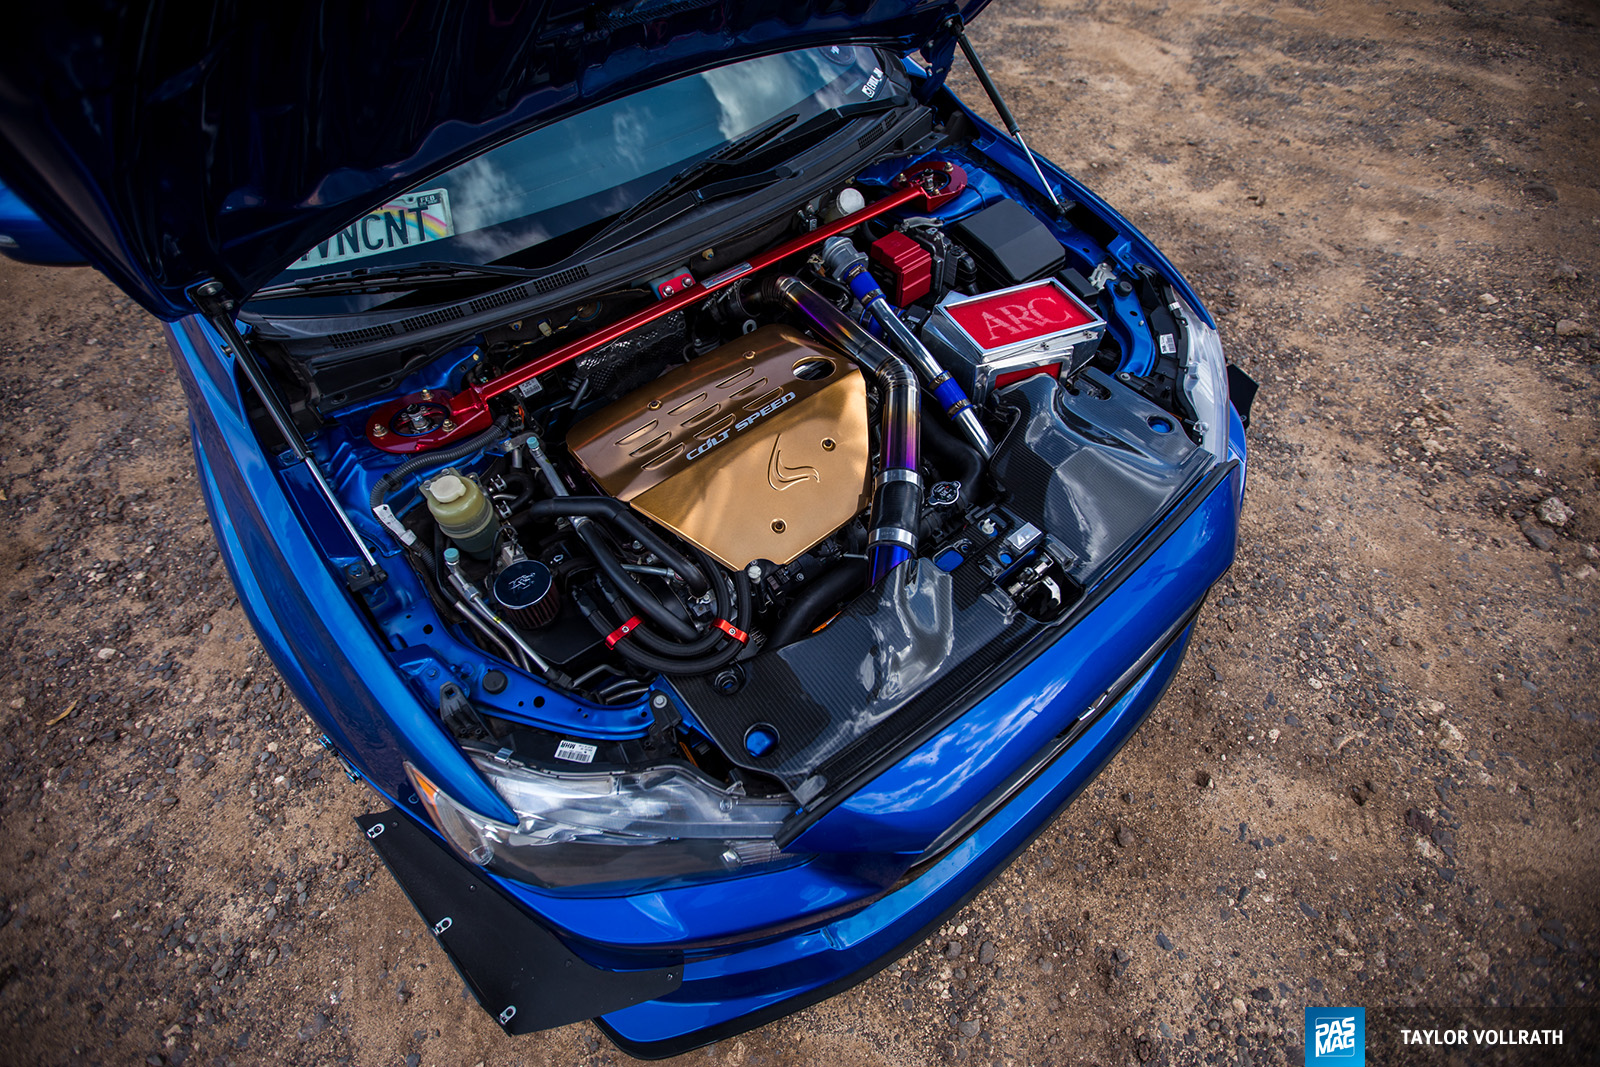 20 JM Andrada 2015 Mitsubishi Evolution X PASMAG Tuner Battlegrounds